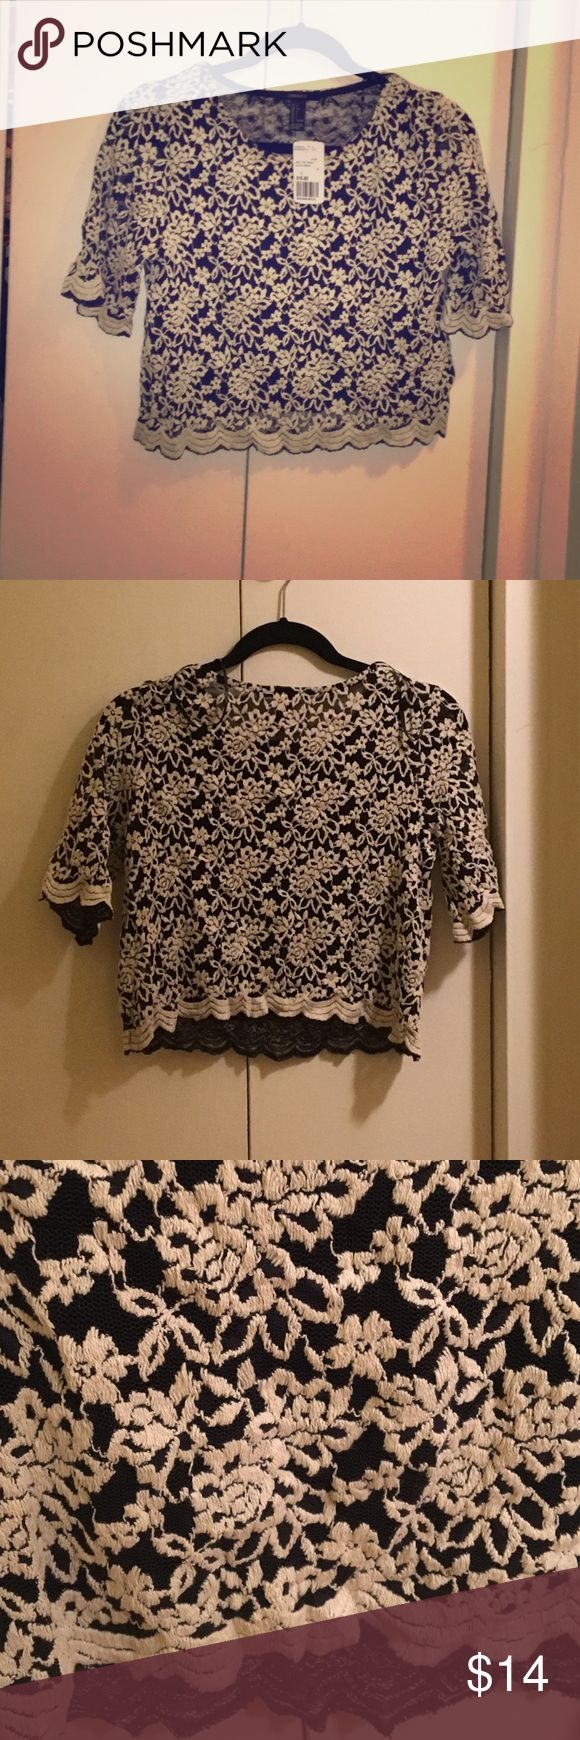 Lacey floral crop top Gorgeous black and cream crop top, brand new with tags on. Floral lace pattern goes great with everything ! Forever 21 Tops Crop Tops